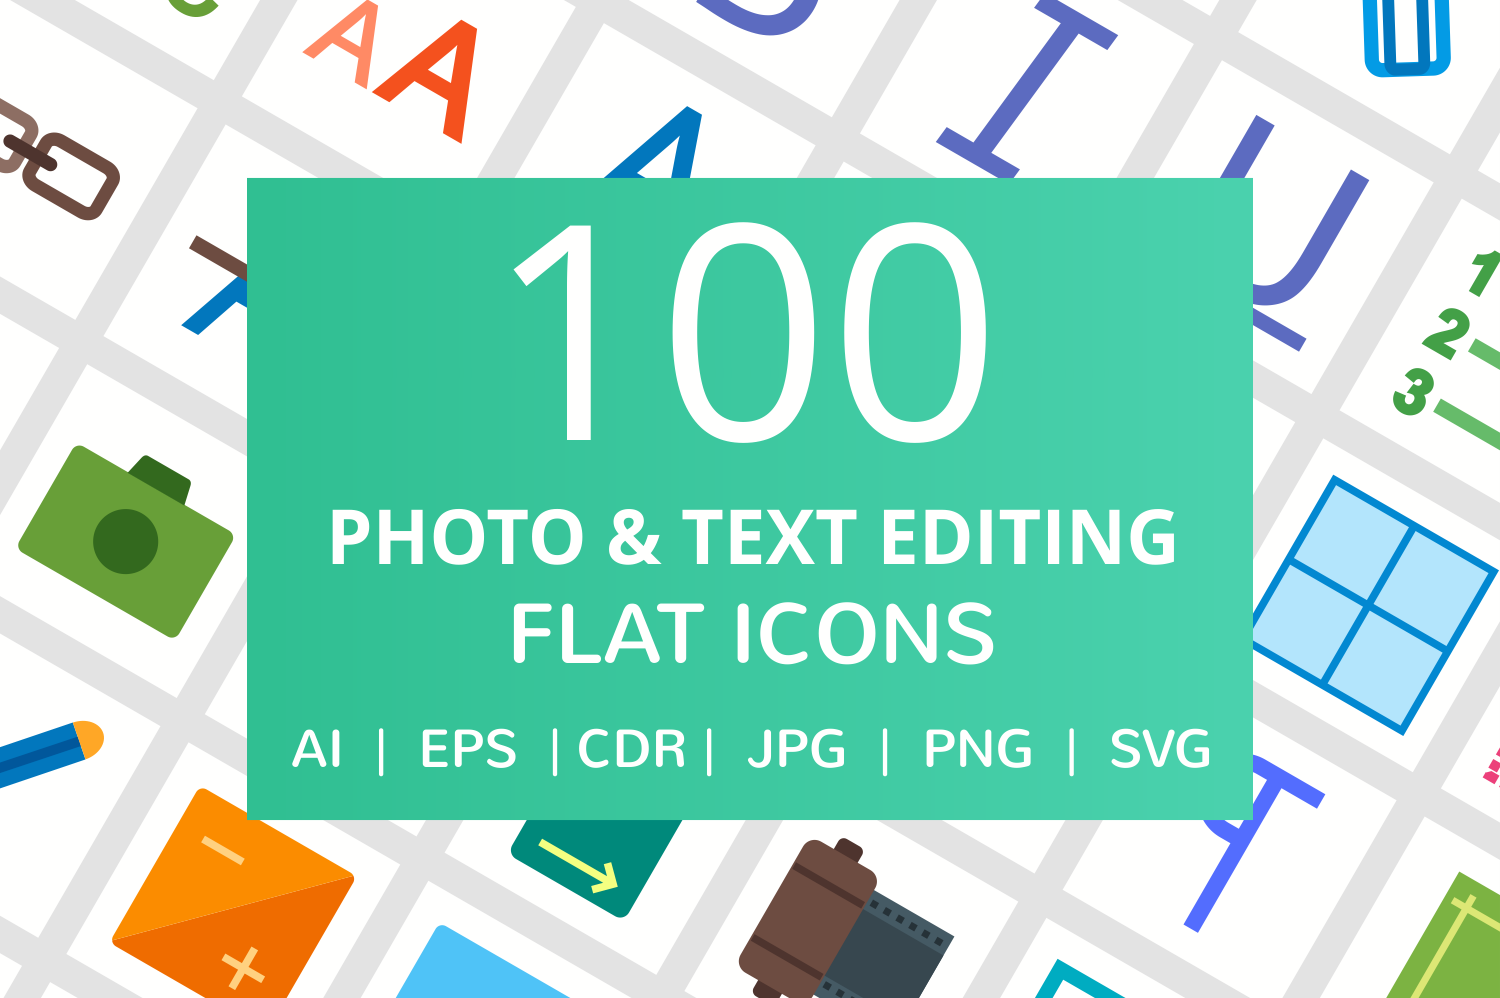 100 Photo & Text Editing Flat Icons example image 1